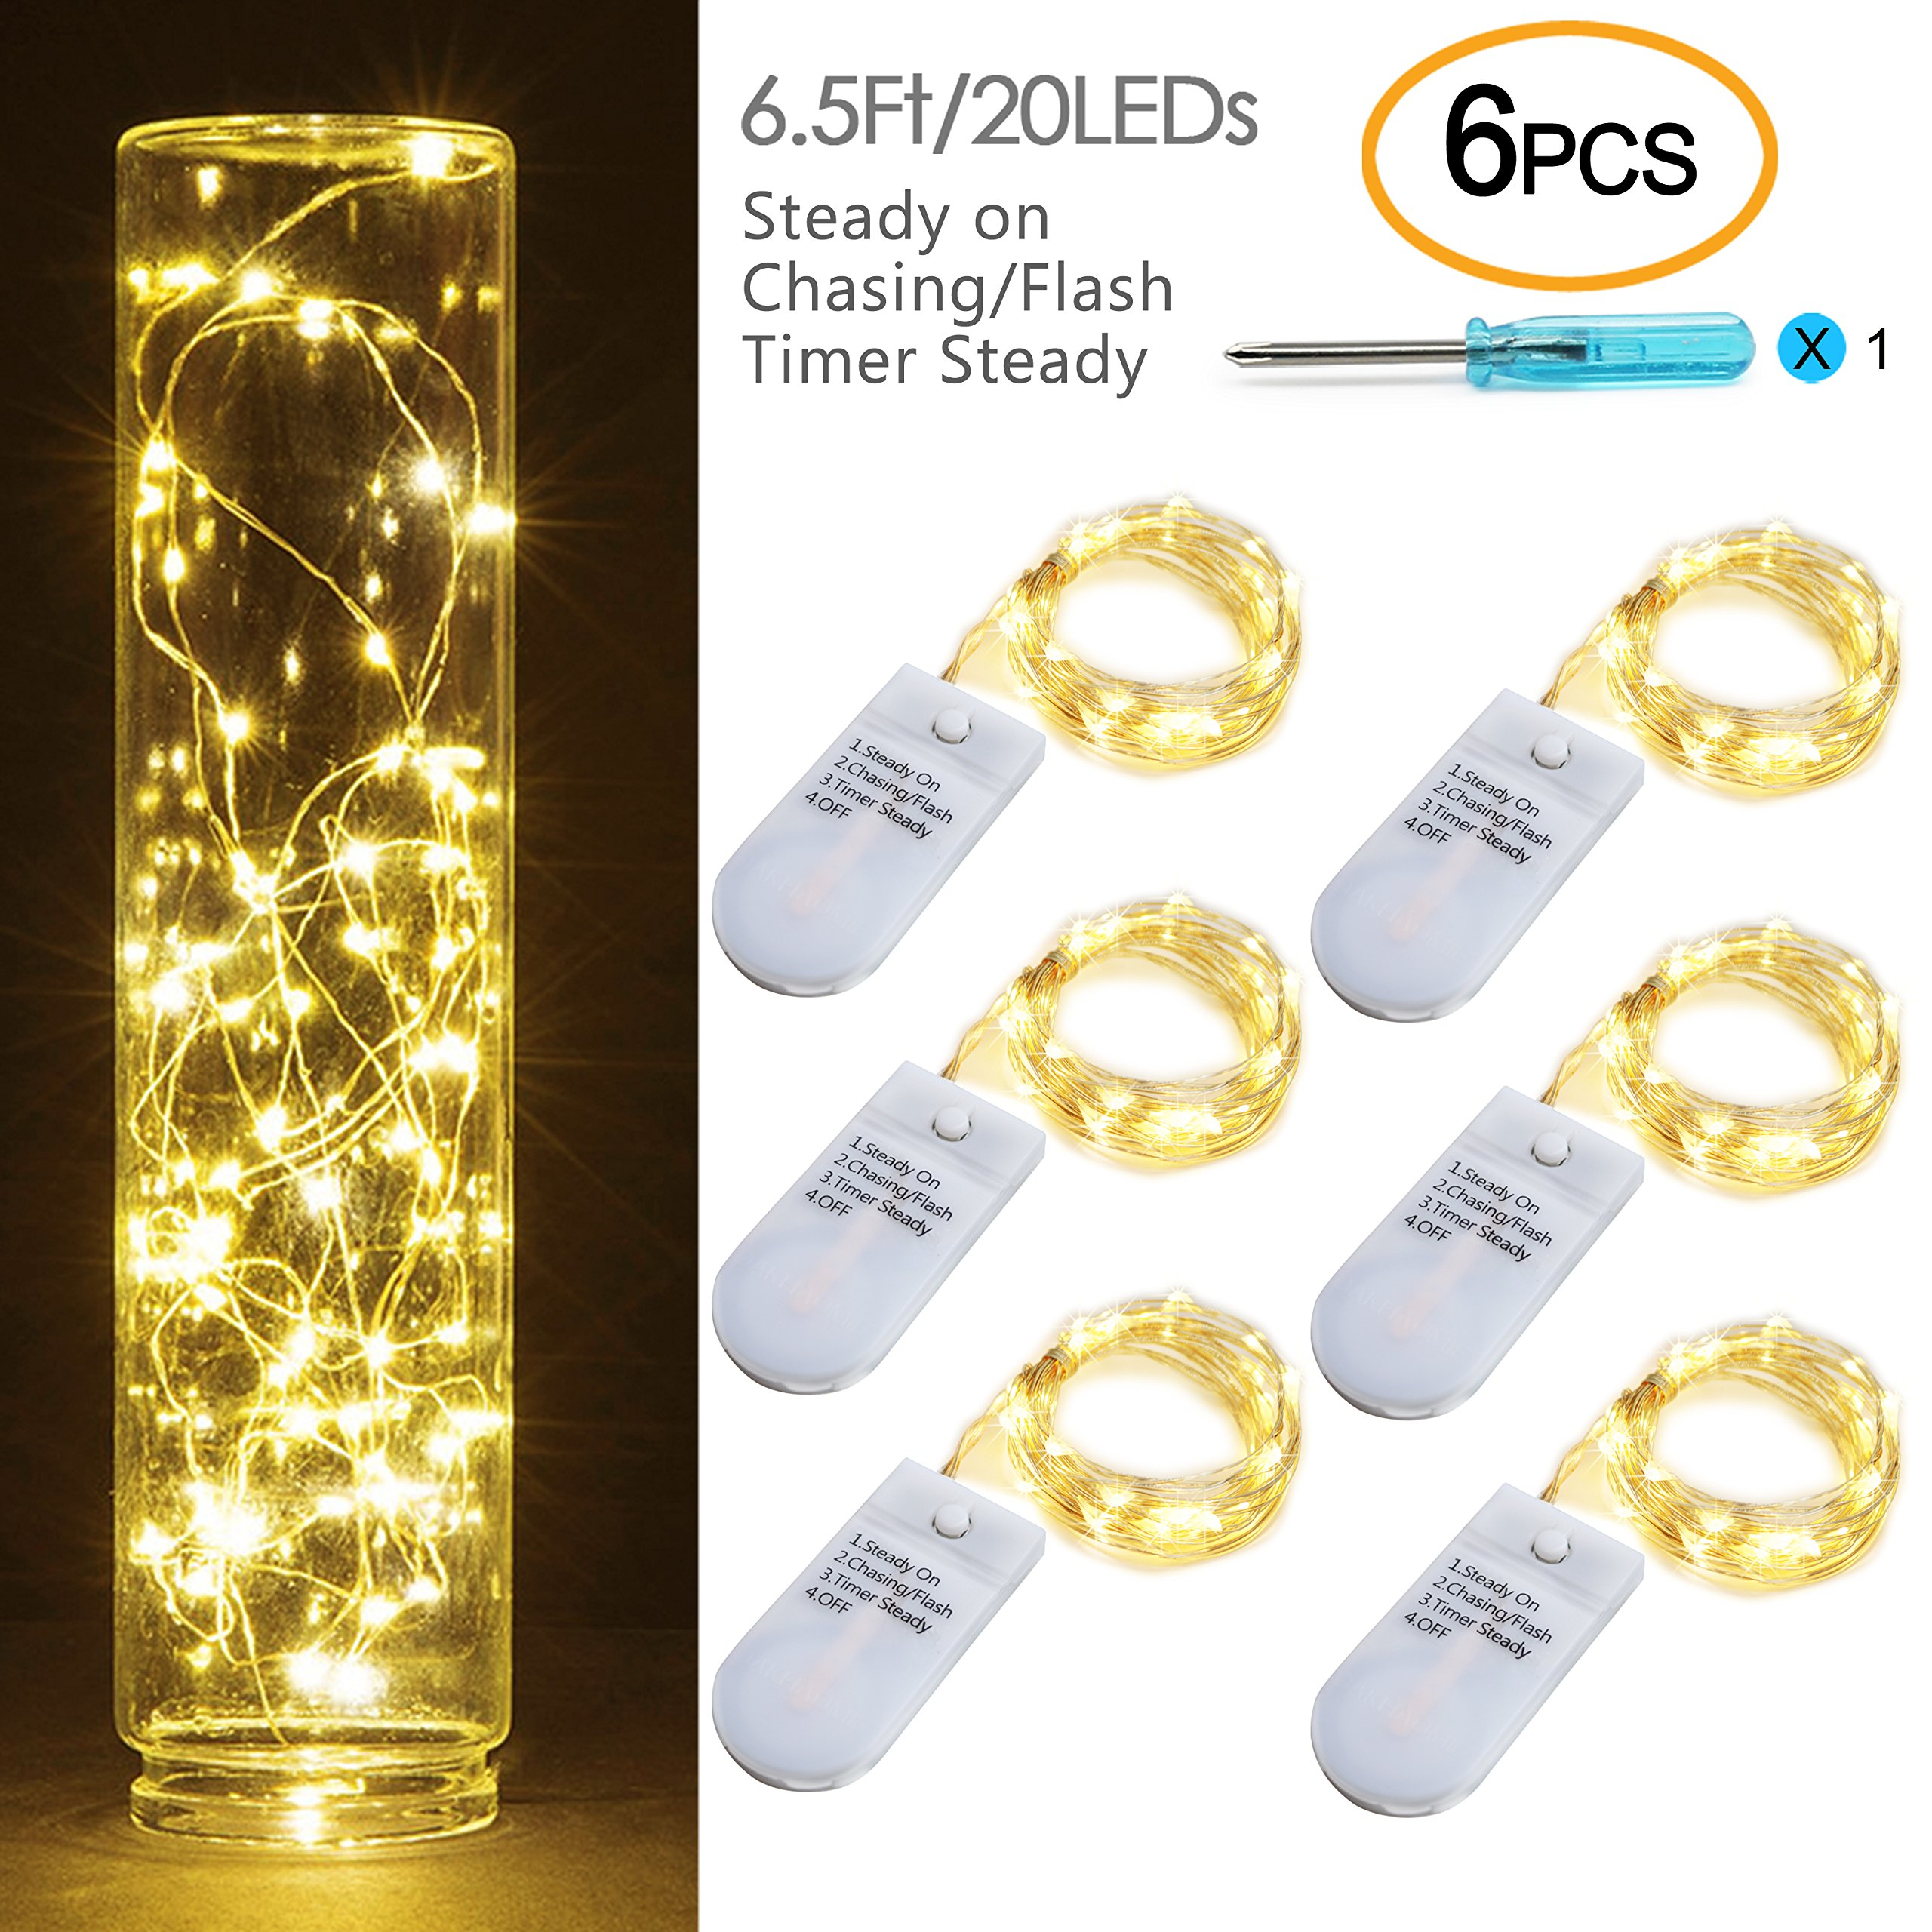 [6-PACK] Timer Fairy Lights 3 Modes Twinkle Lights with 20 LED Starry String Lights on 6.5ft Silver Wire,Fairy Lights Battery Powered by 2xCR2032 for Party,Wedding,Christmas Tabel Decor,Warm White